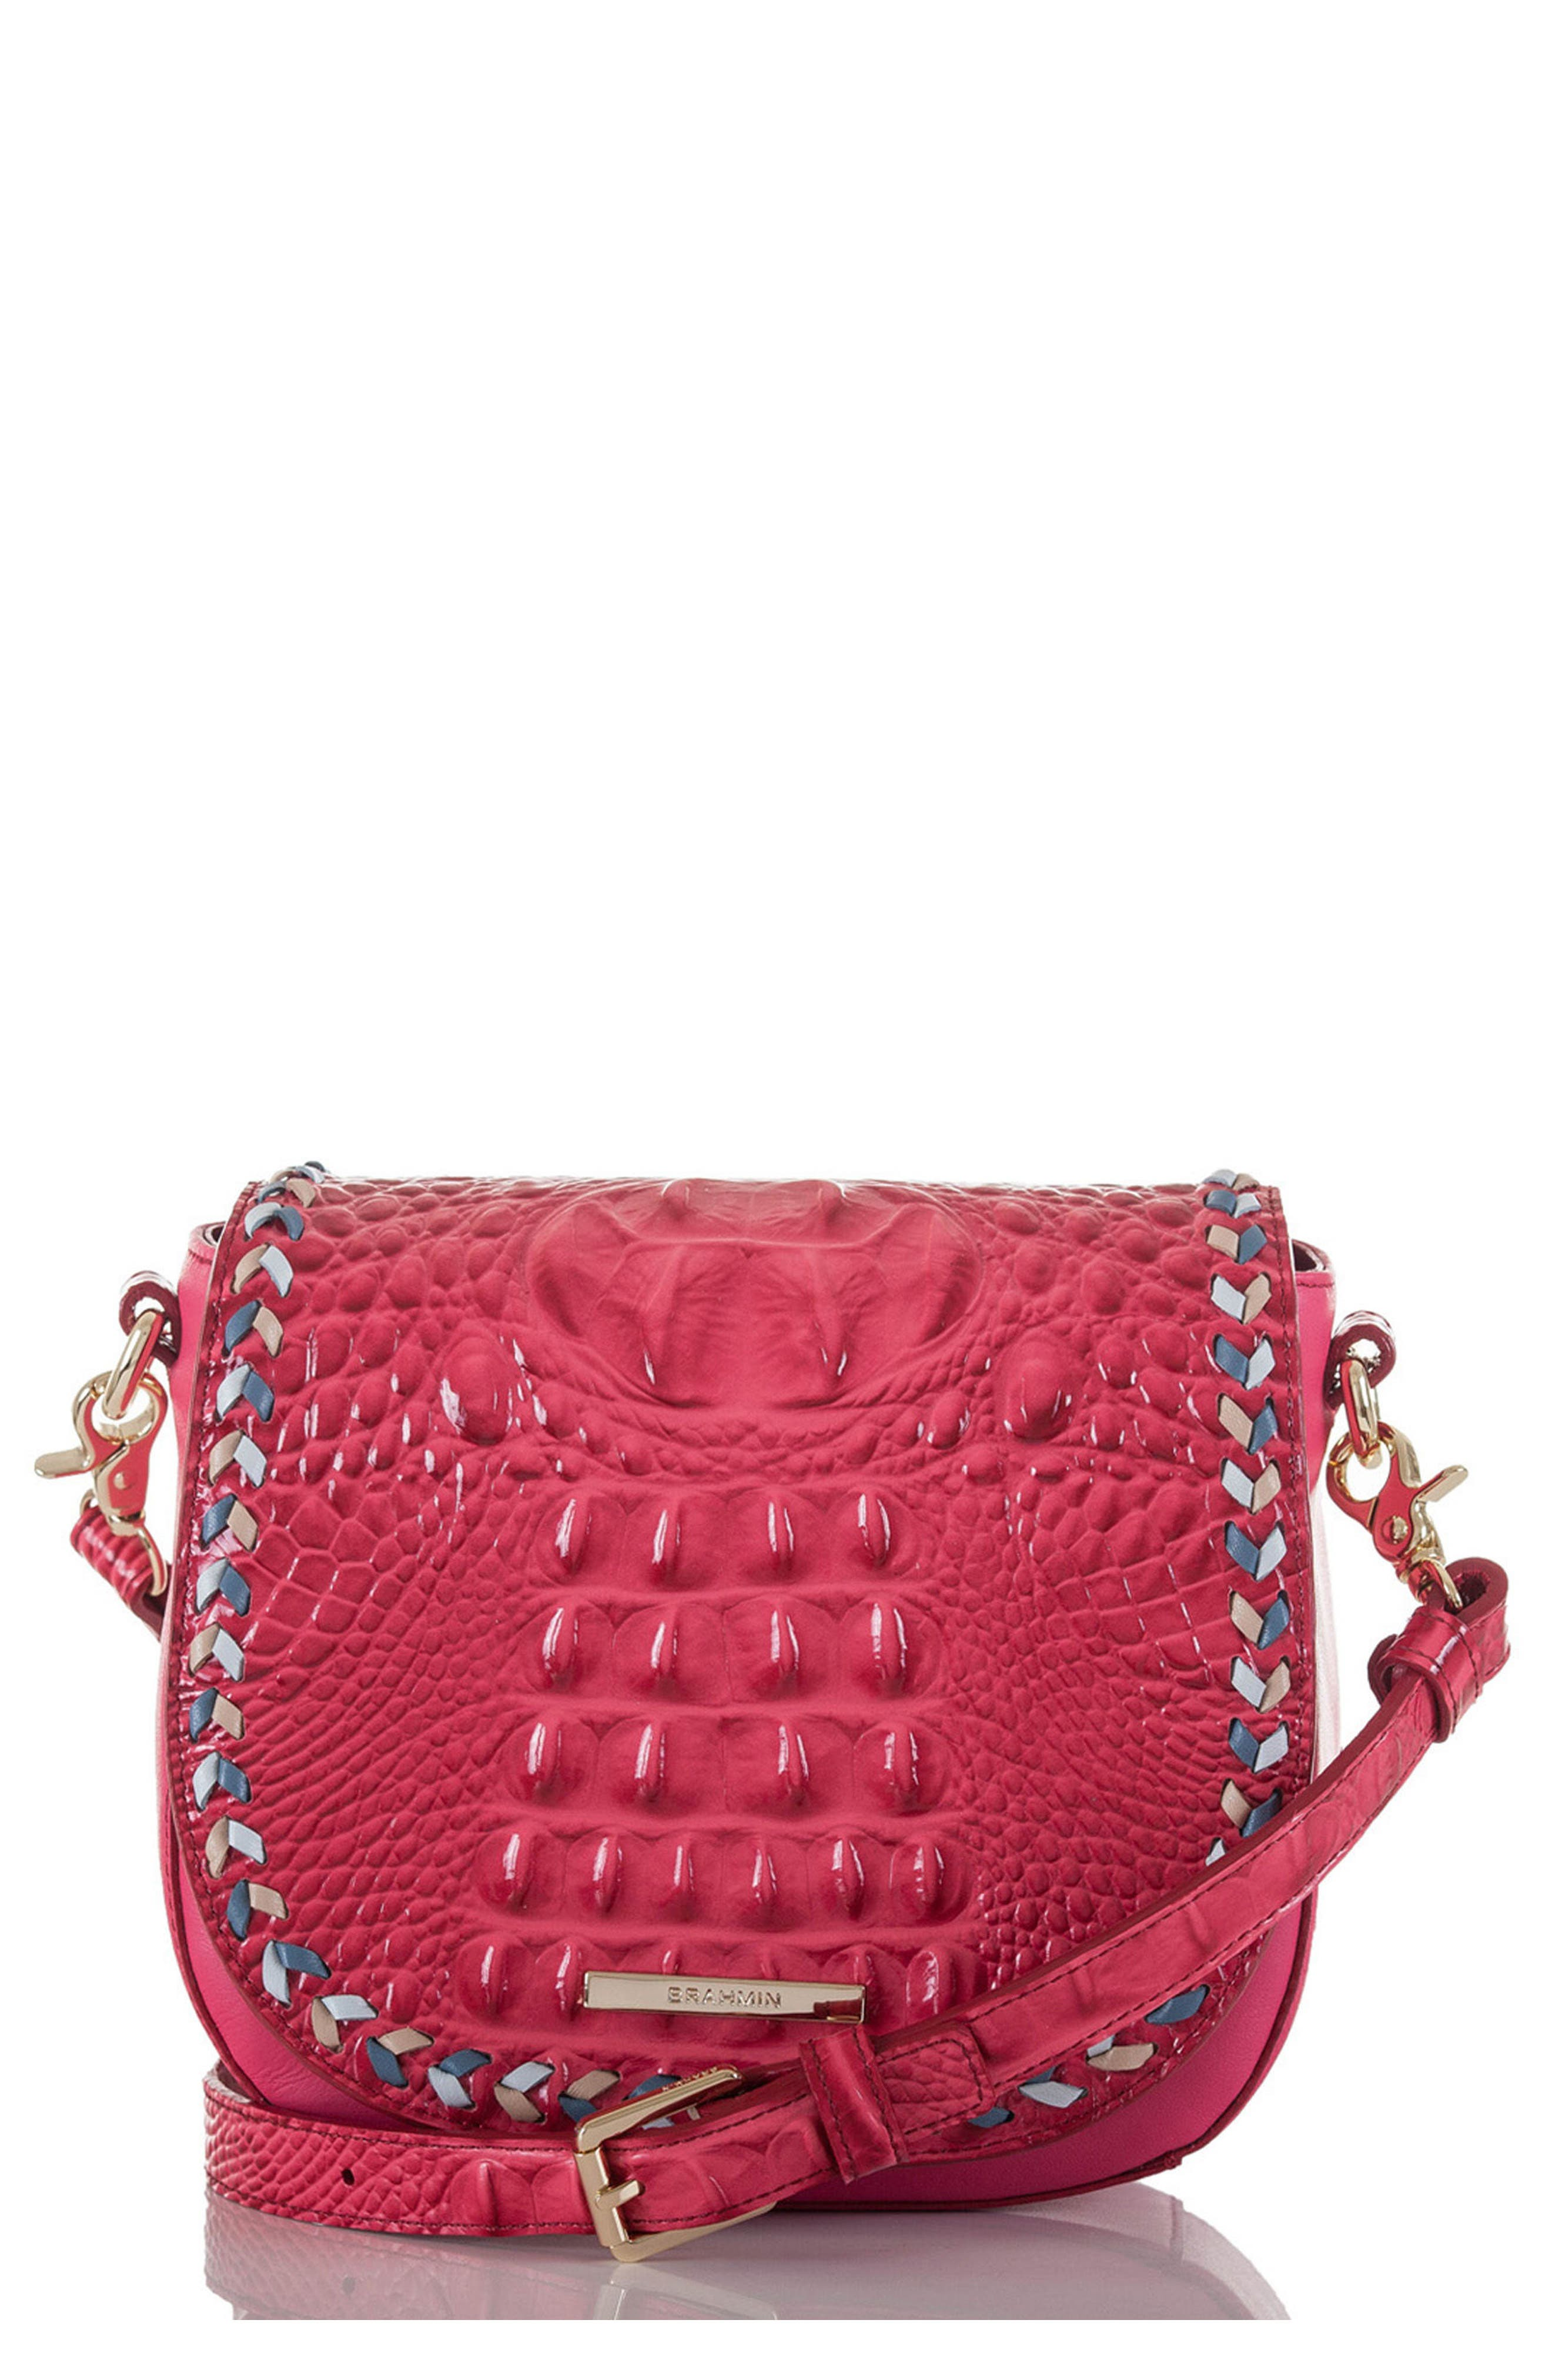 Mini Sonny Whipstitched Leather Crossbody Bag,                         Main,                         color, 650